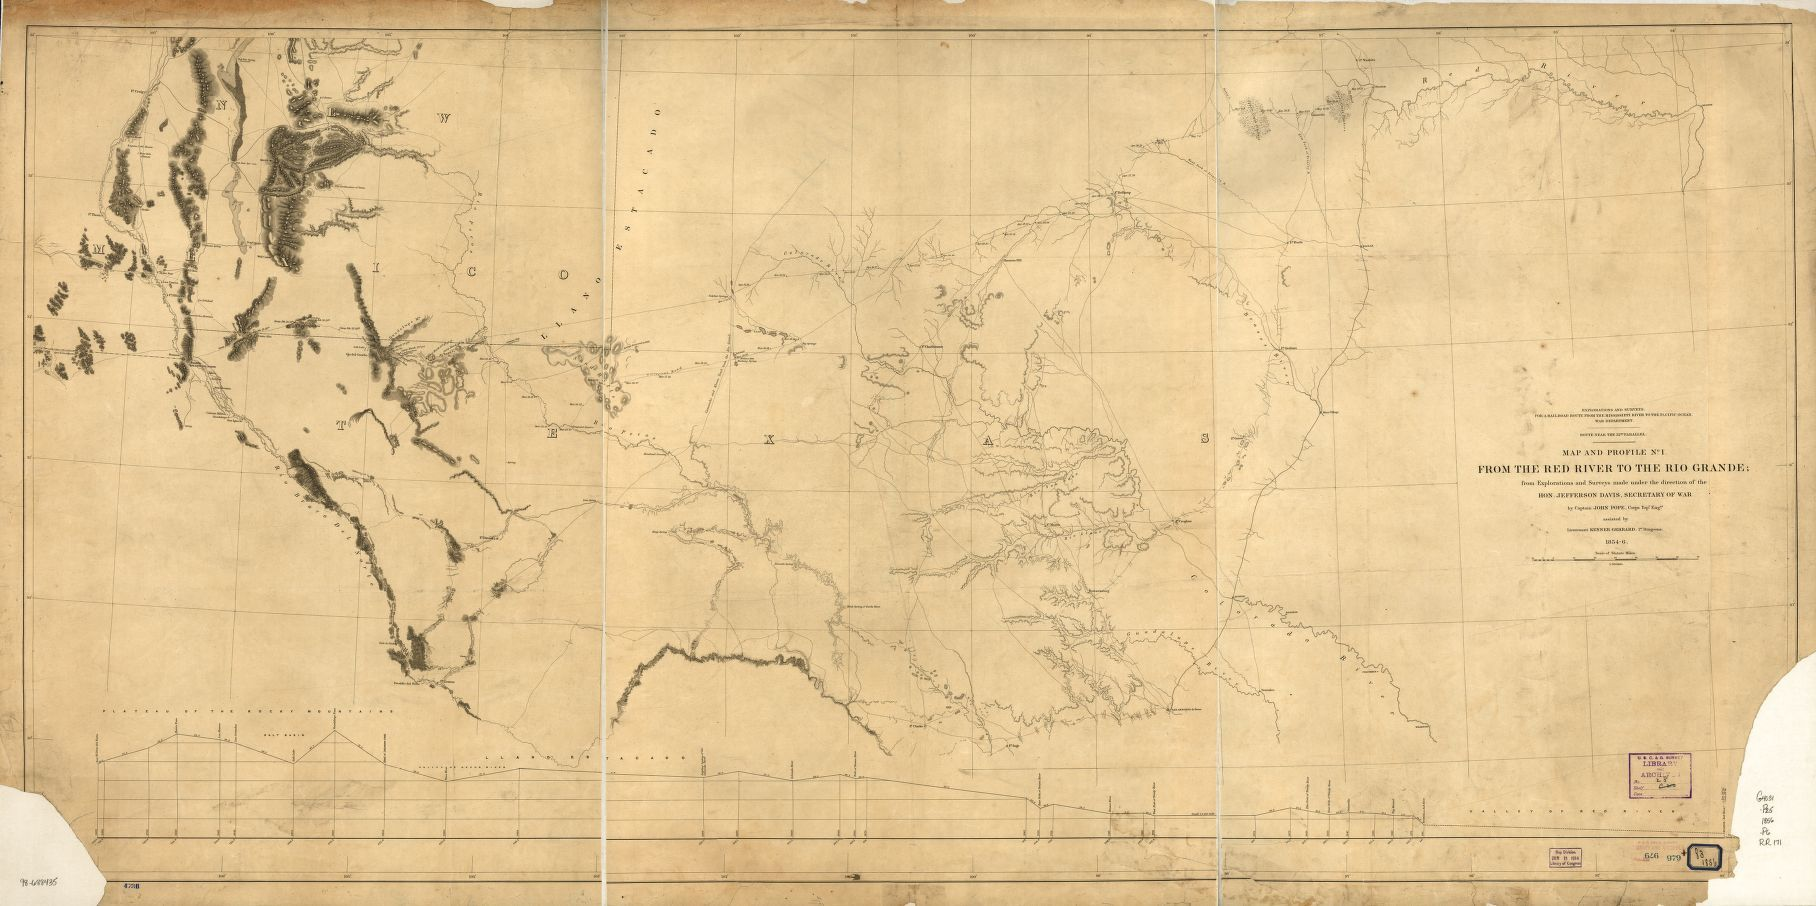 1859 - From the Red River to the Rio Grande